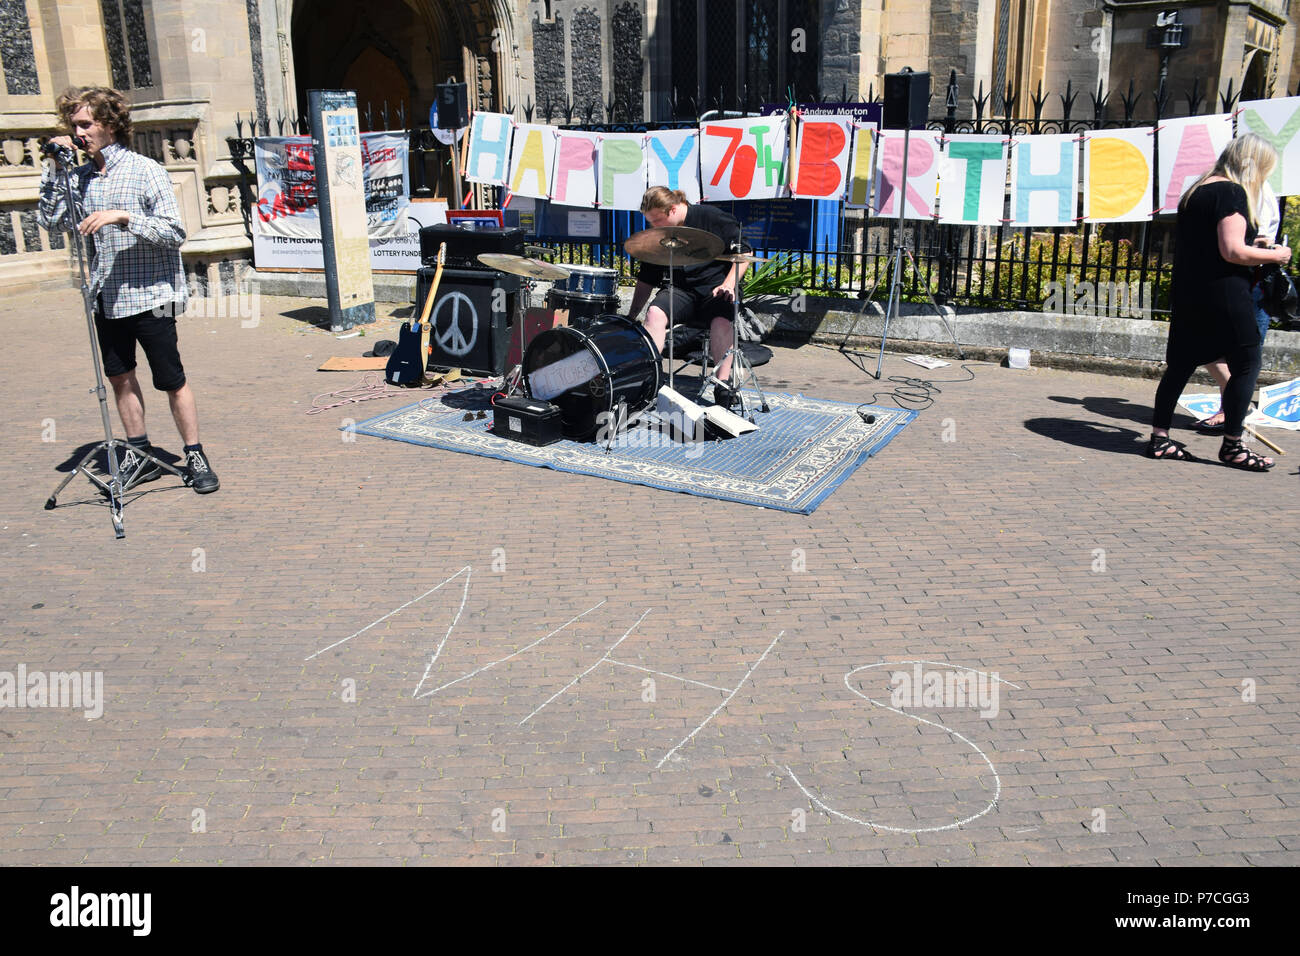 NHS 70th birthday event in central Norwich, June 2018 UK - Stock Image